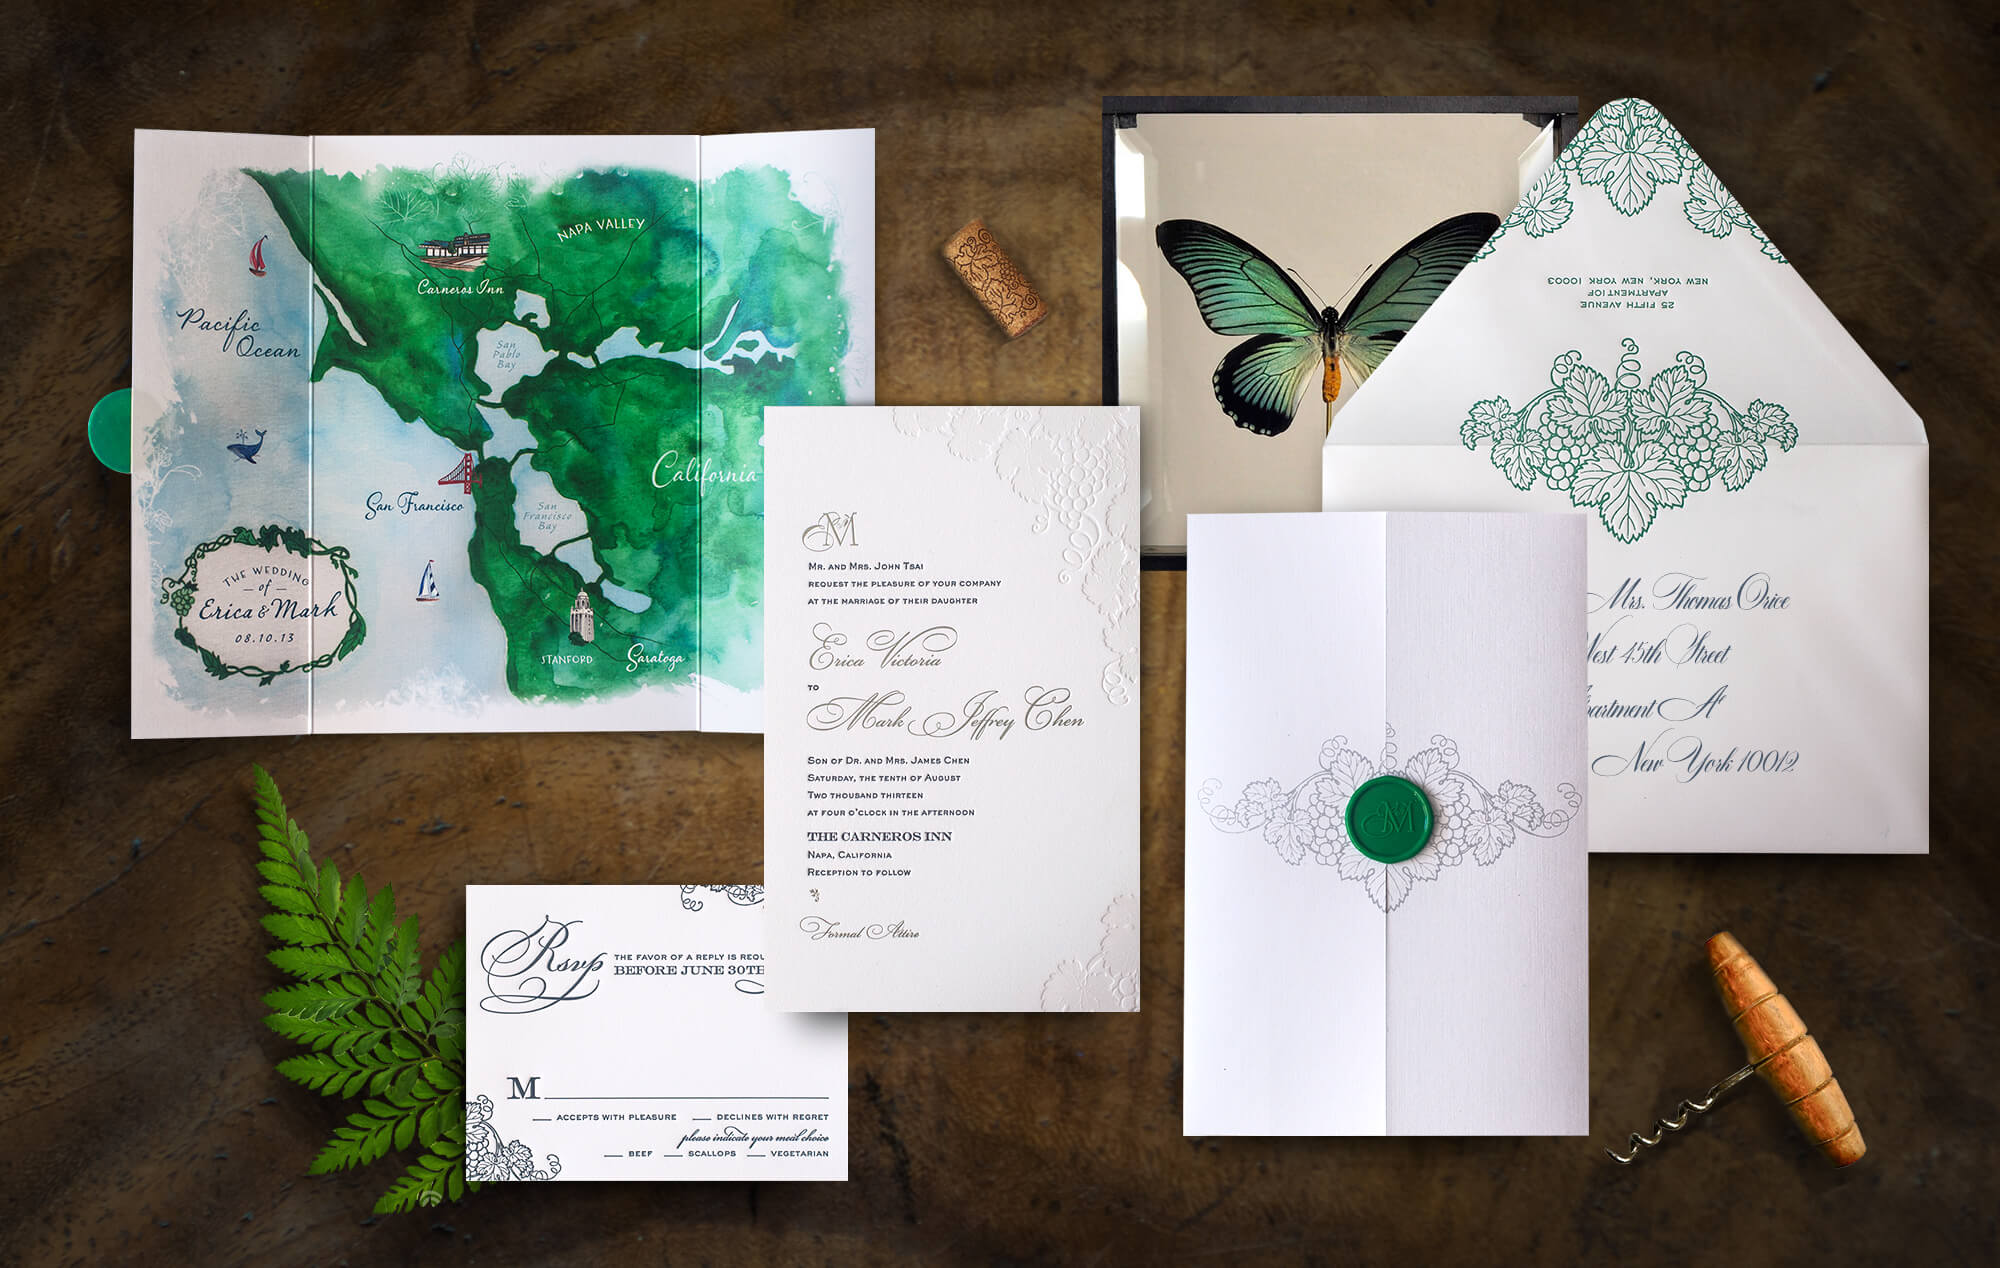 Napa Valley vineyard wedding invitation